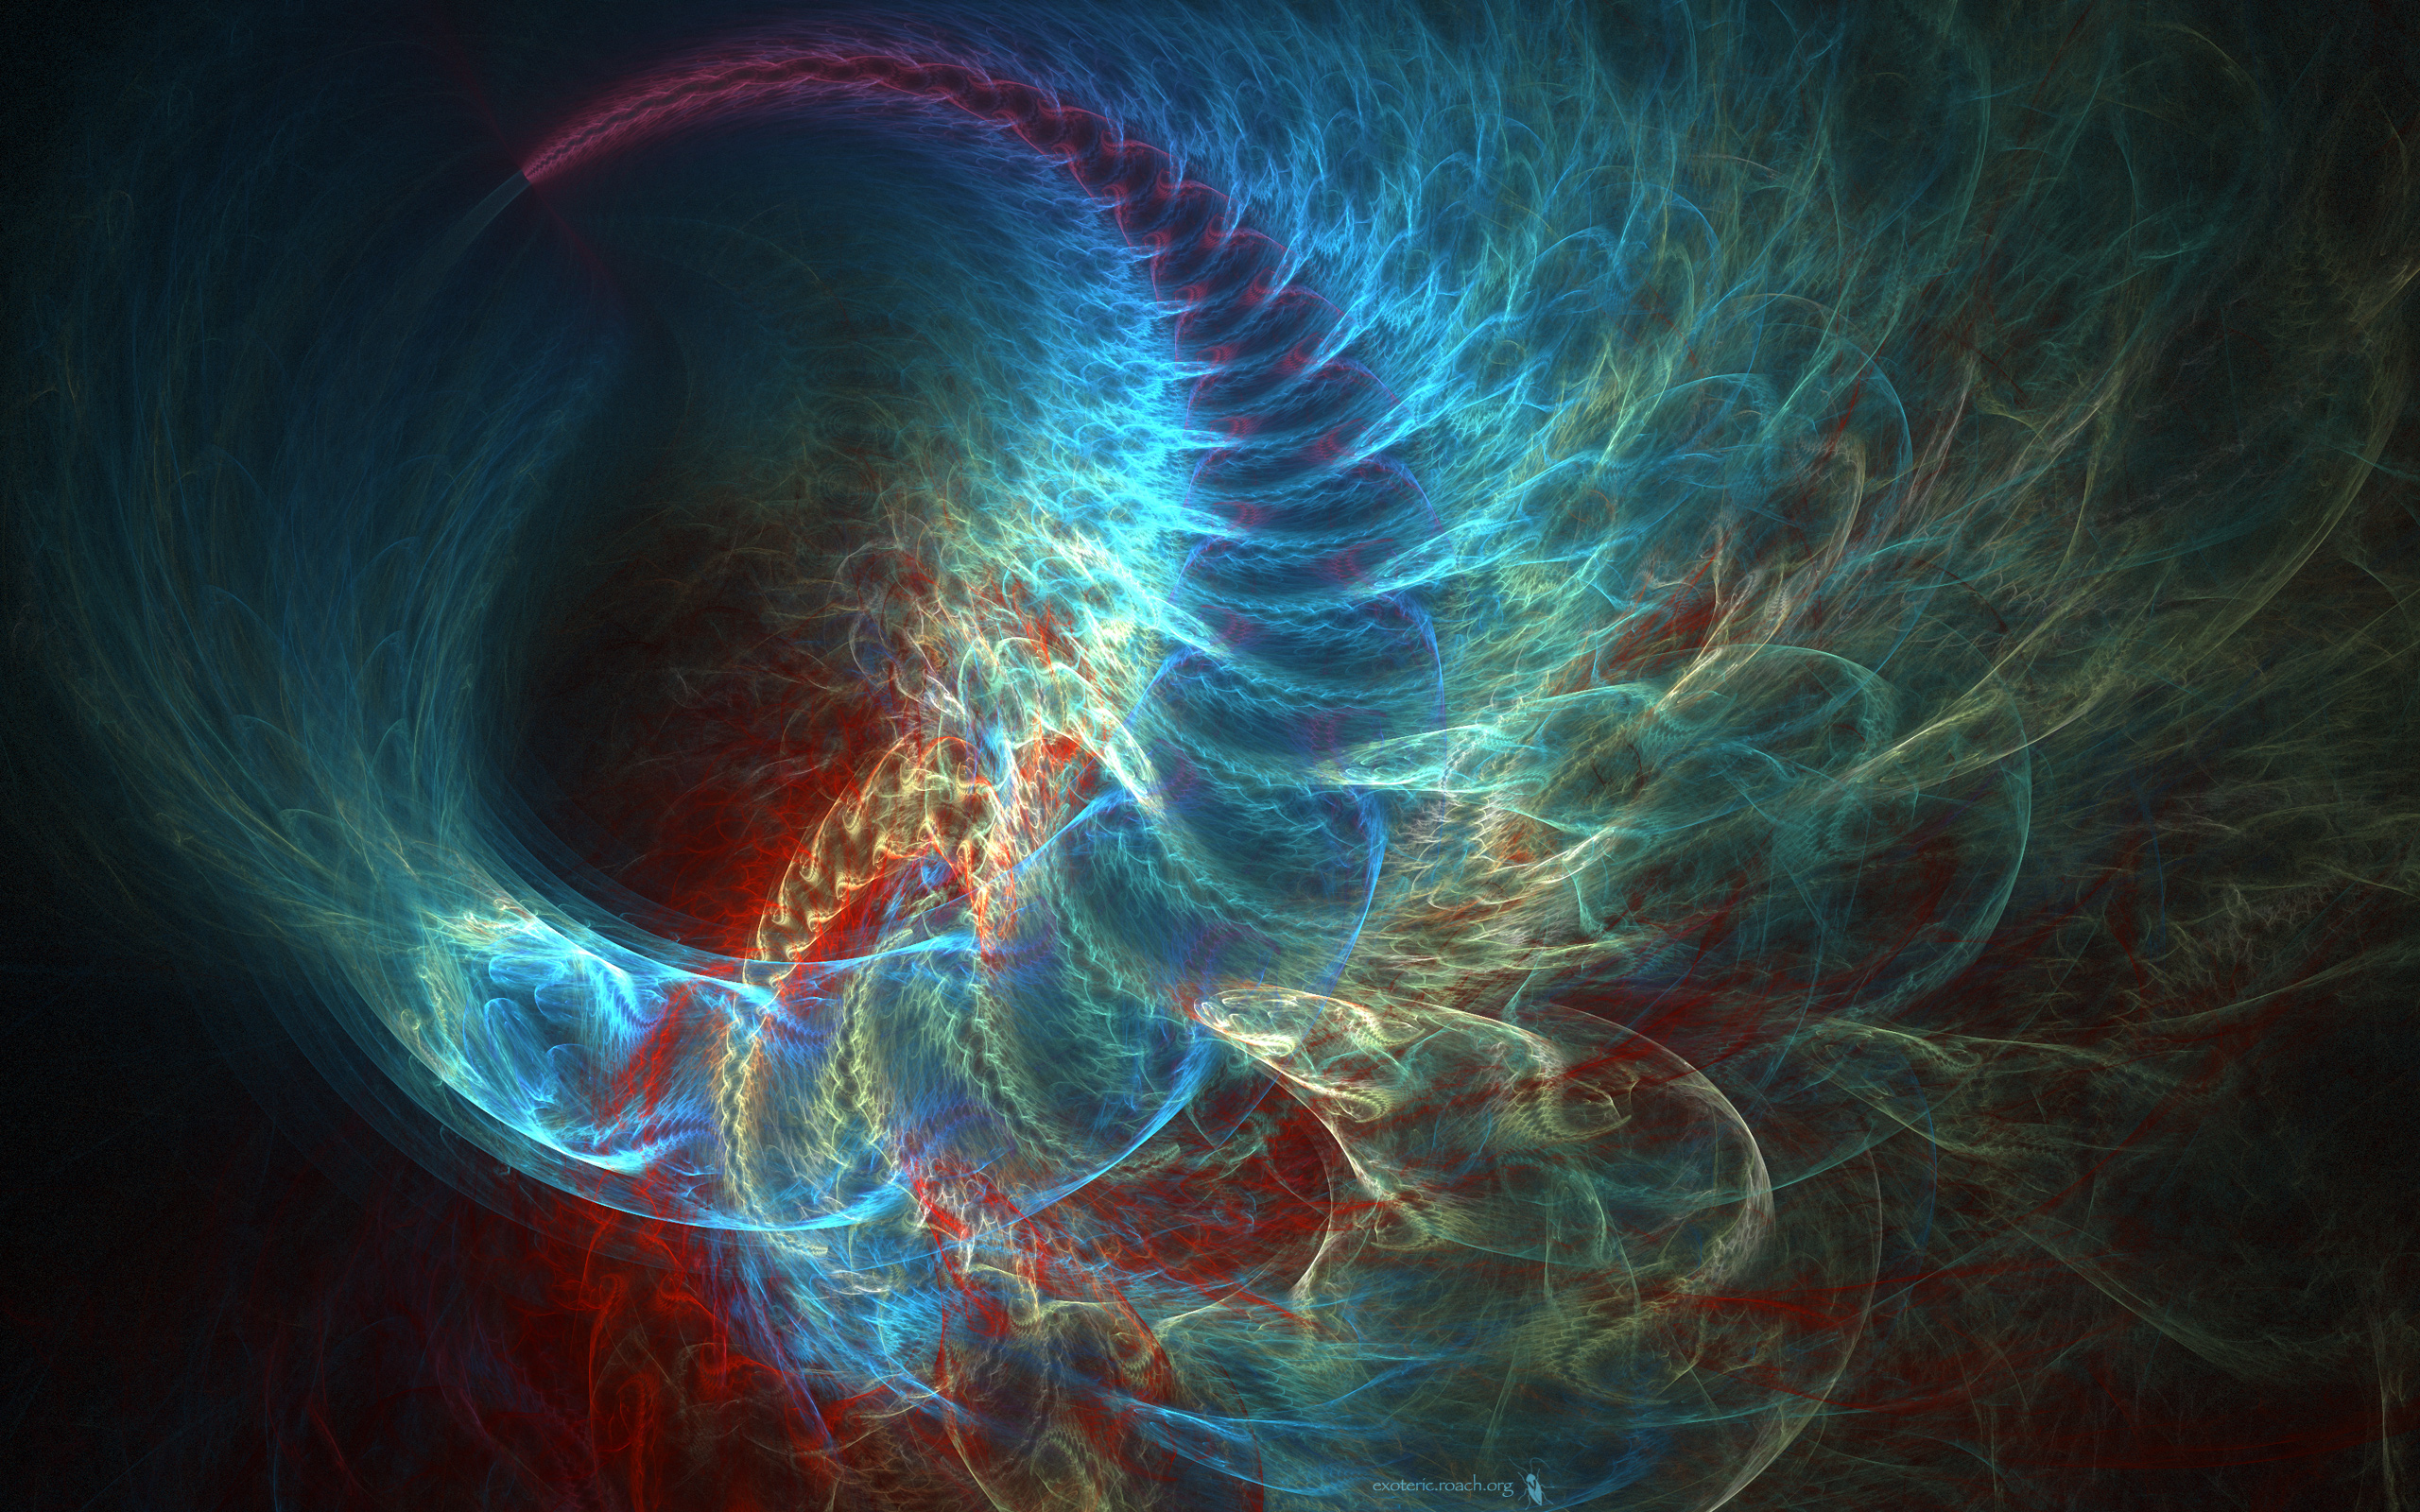 84 fractal hd wallpapers backgrounds wallpaper abyss - Wallpaper abyss categories ...